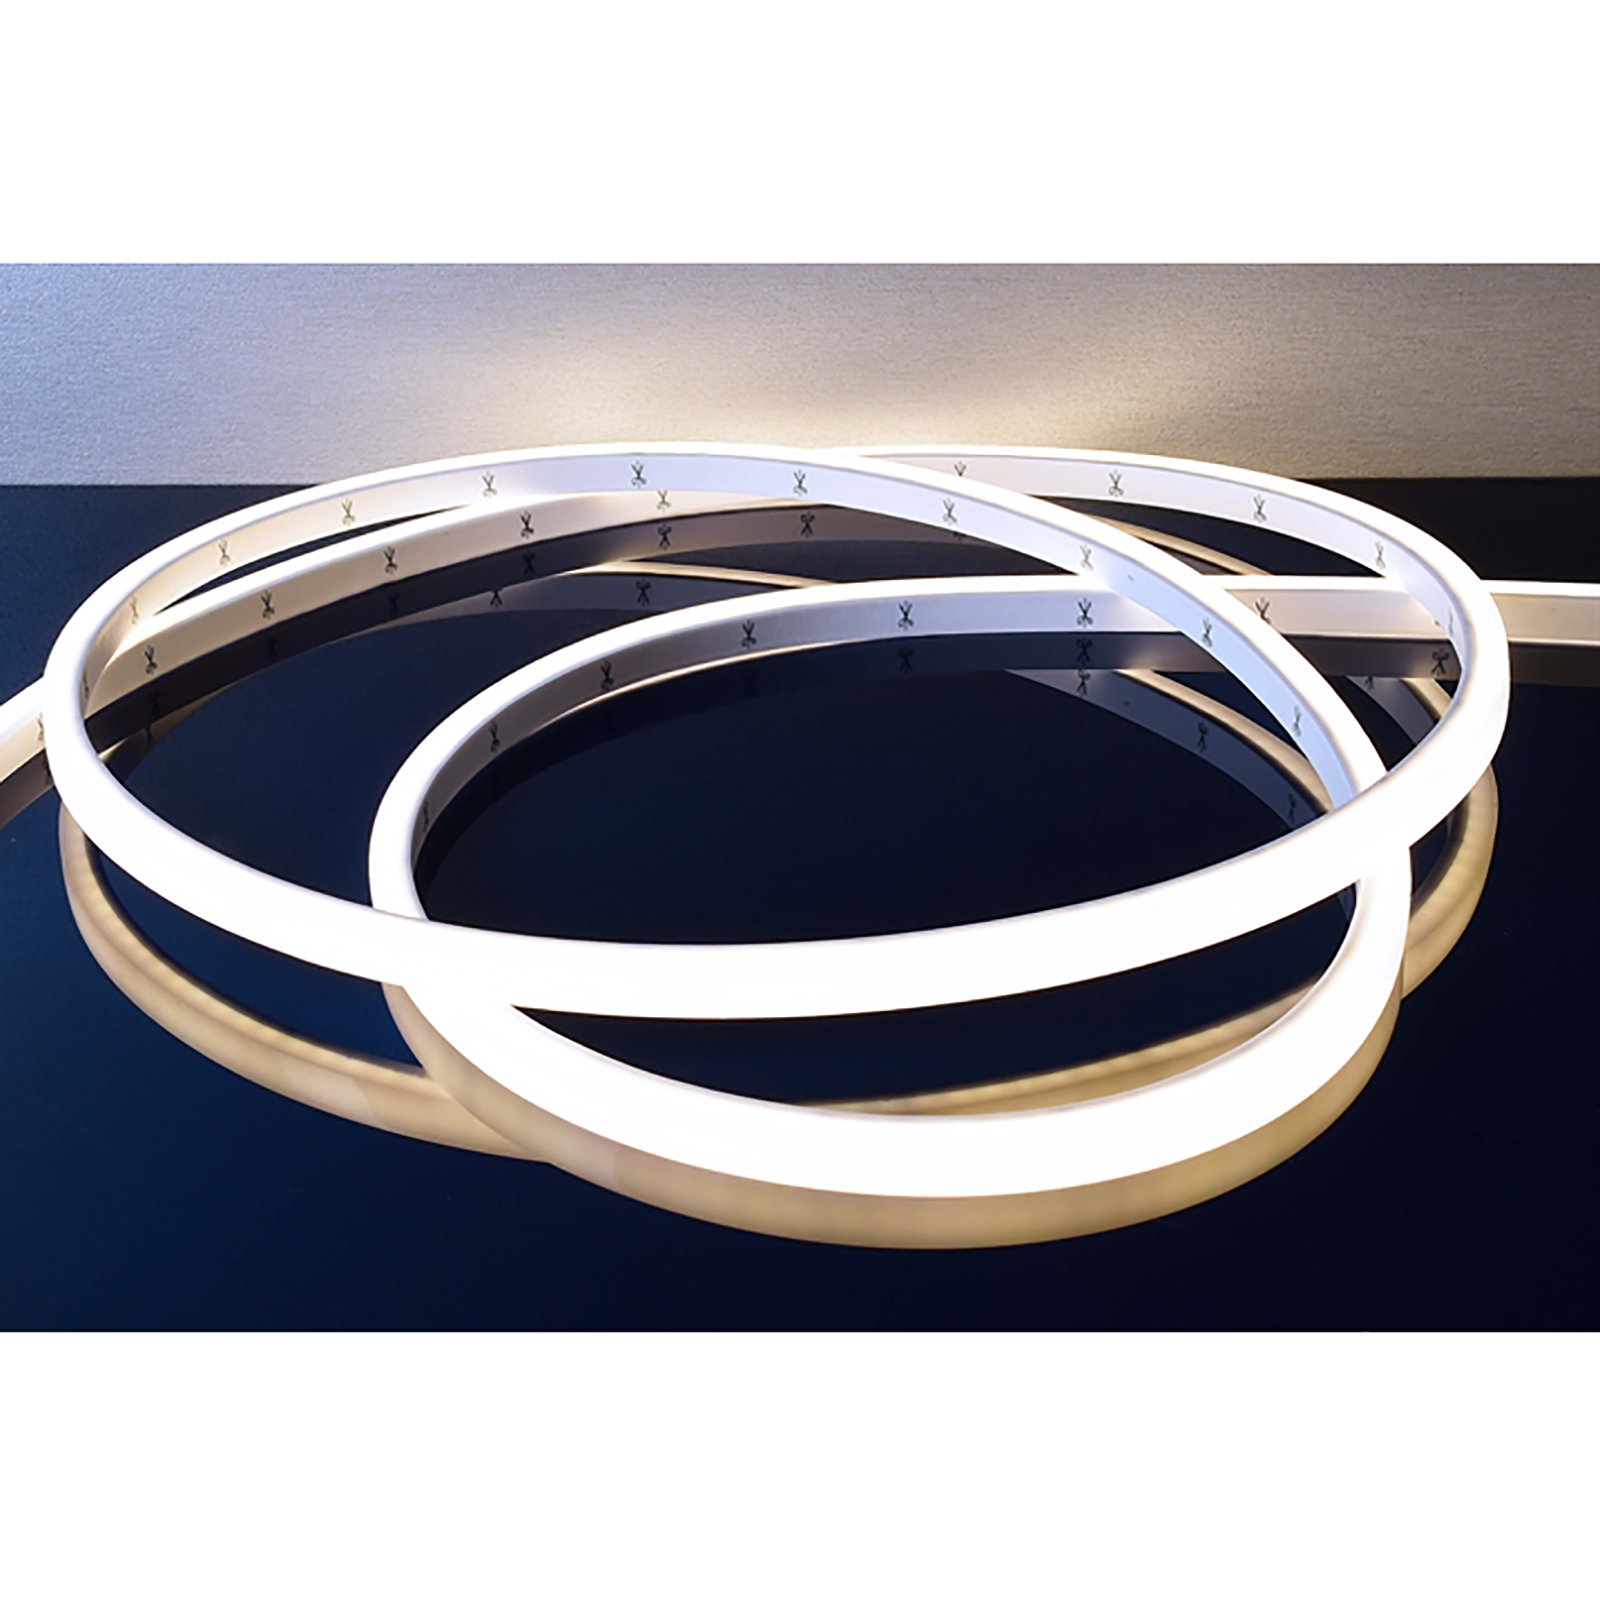 Flexible strip LED 50W immersion flex neon 3000K IP68 lights, fountain, 24V